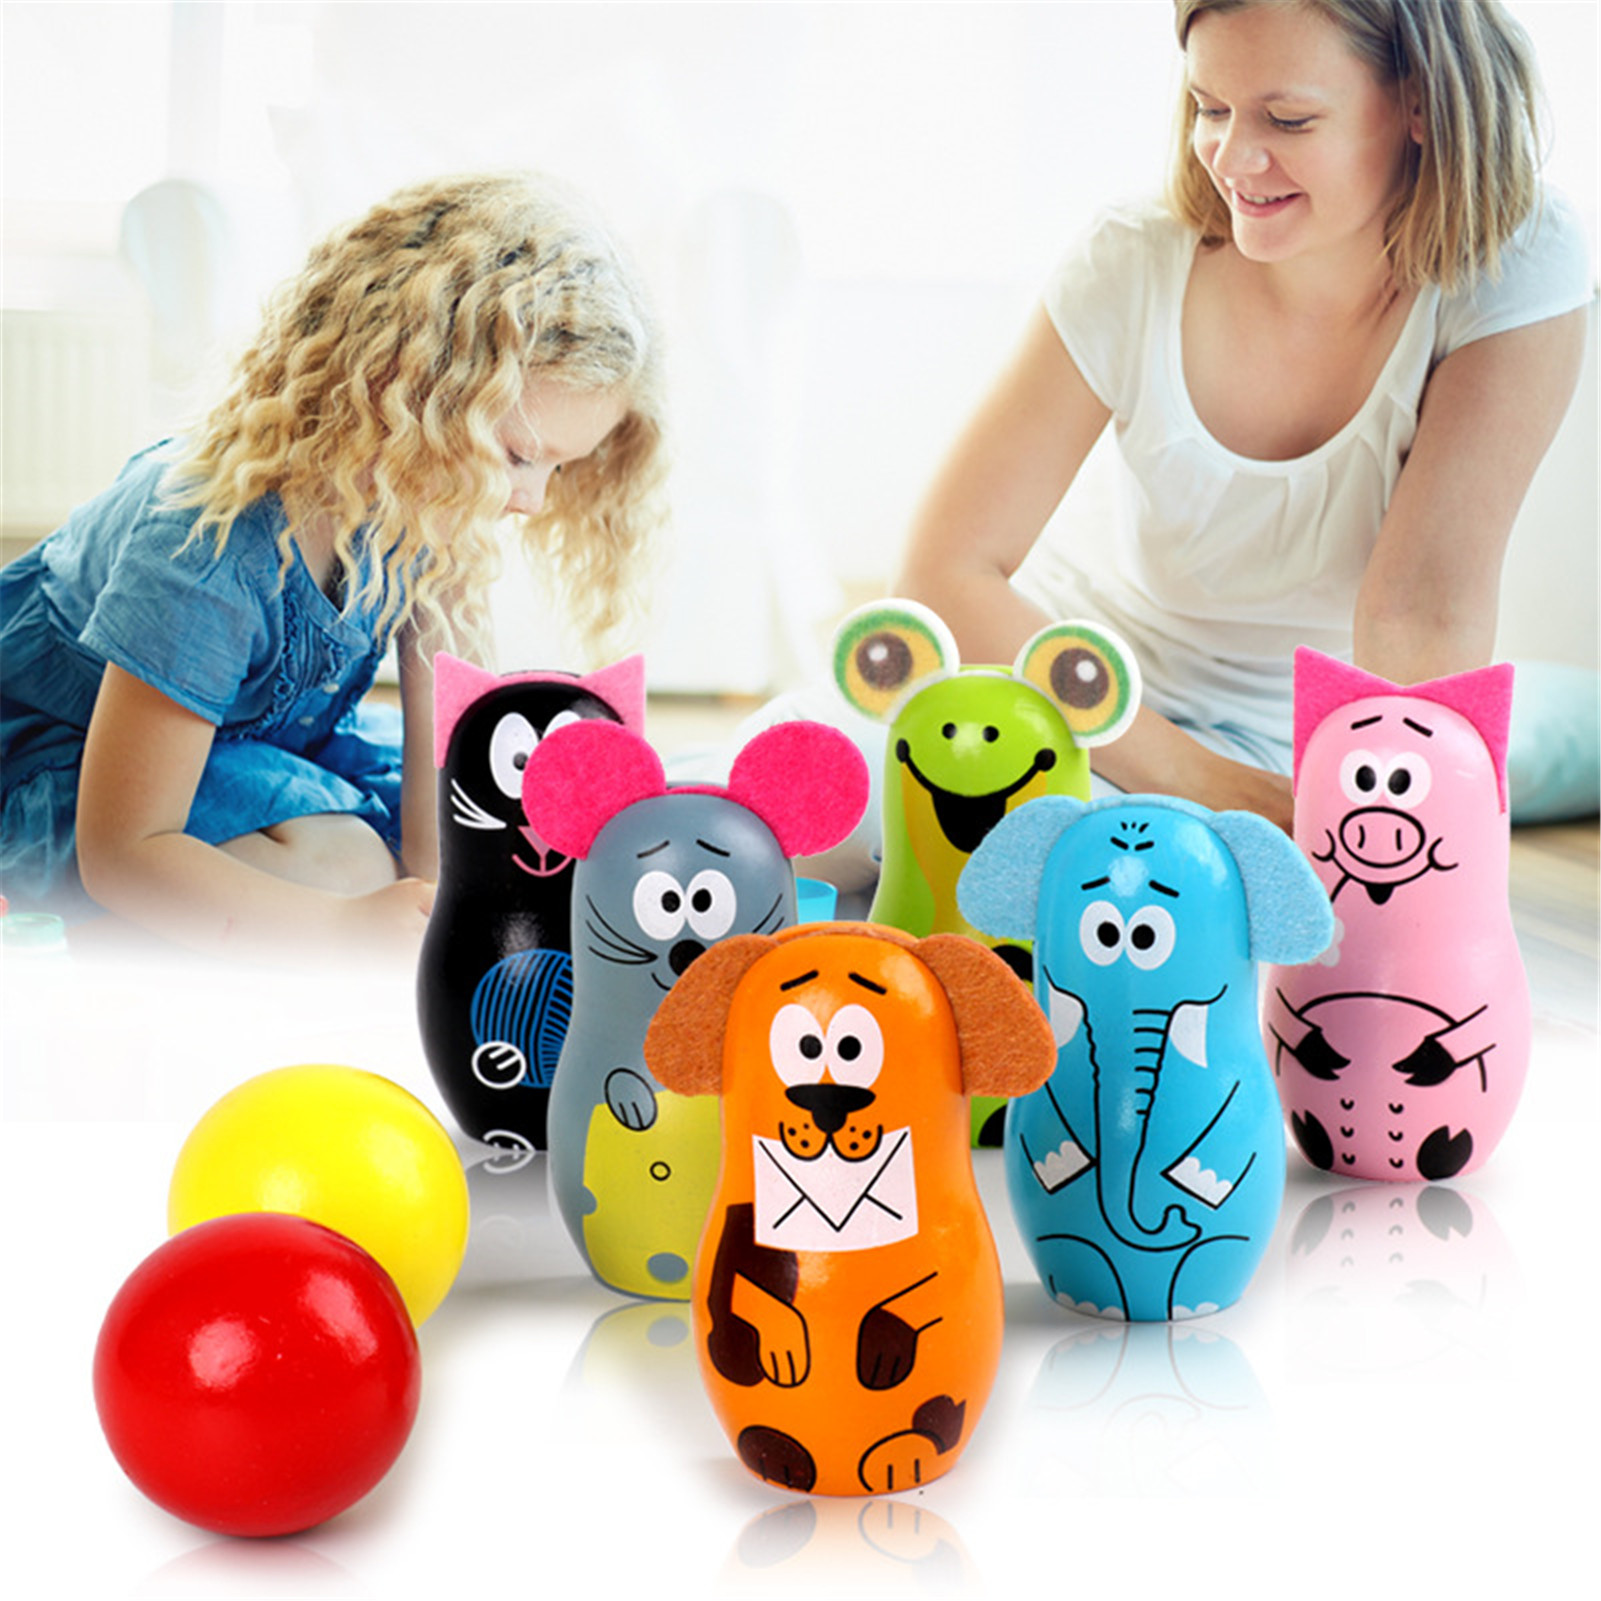 WOODEN MINI BOWLING BALL SET Cartoon Animal Shape Ball Game Kids Outdoor Sport Toys For Color Digital Cognition